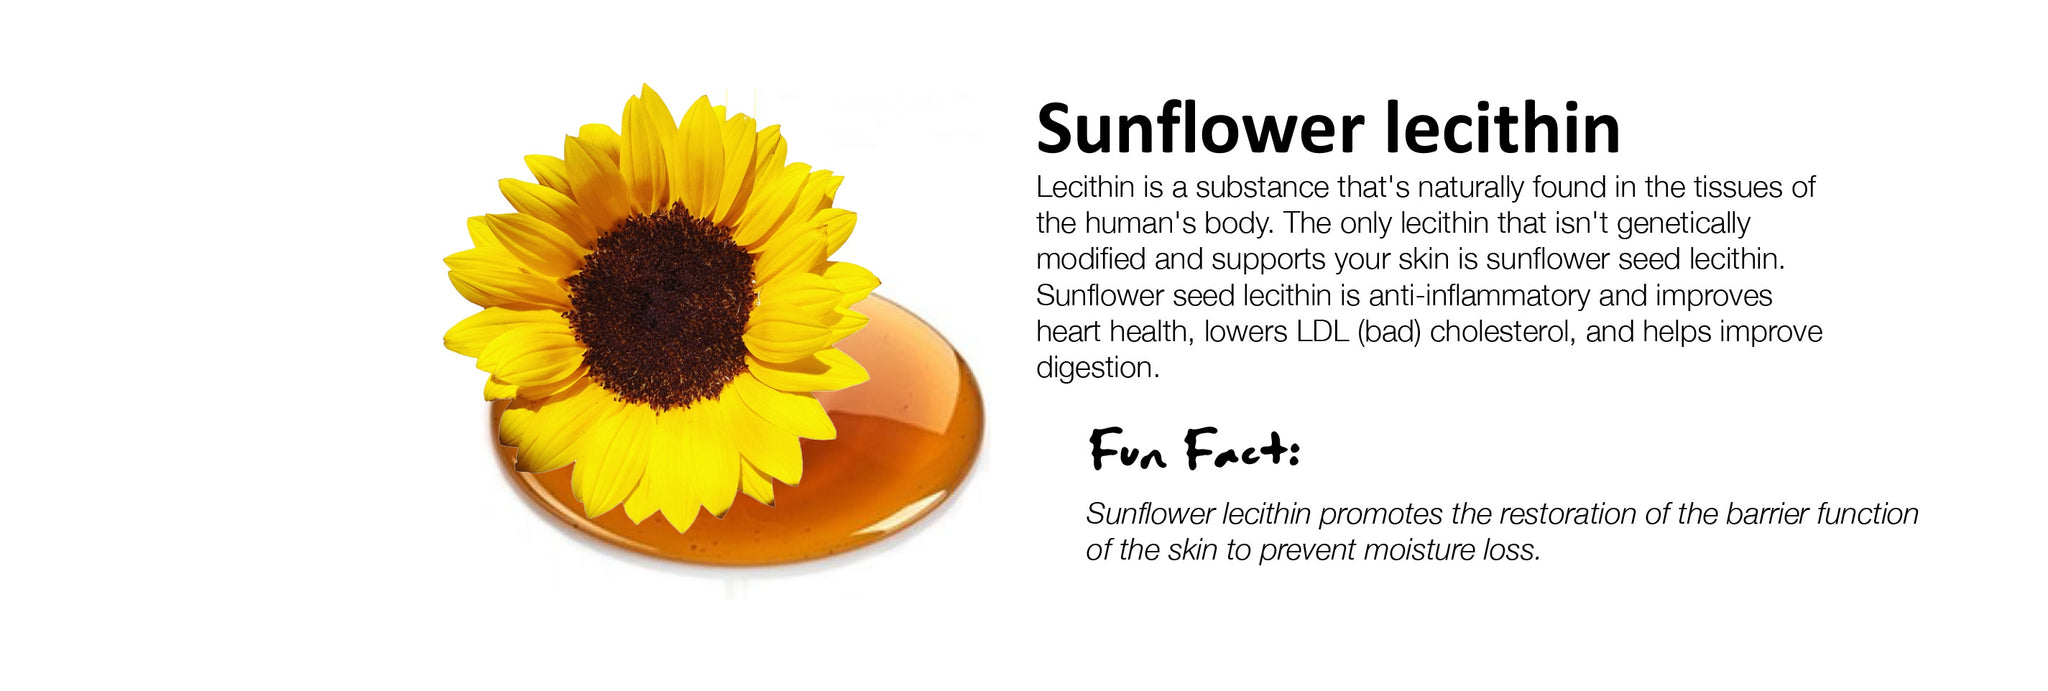 Sunflower lecithin Lecithin is a substance that's naturally found in the tissues of the human's body. The only lecithin that isn't genetically modified and supports your skin is sunflower seed lecithin. Sunflower seed lecithin is anti-inflammatory and improves heart health, lowers LDL (bad) cholesterol, and helps improve digestion.